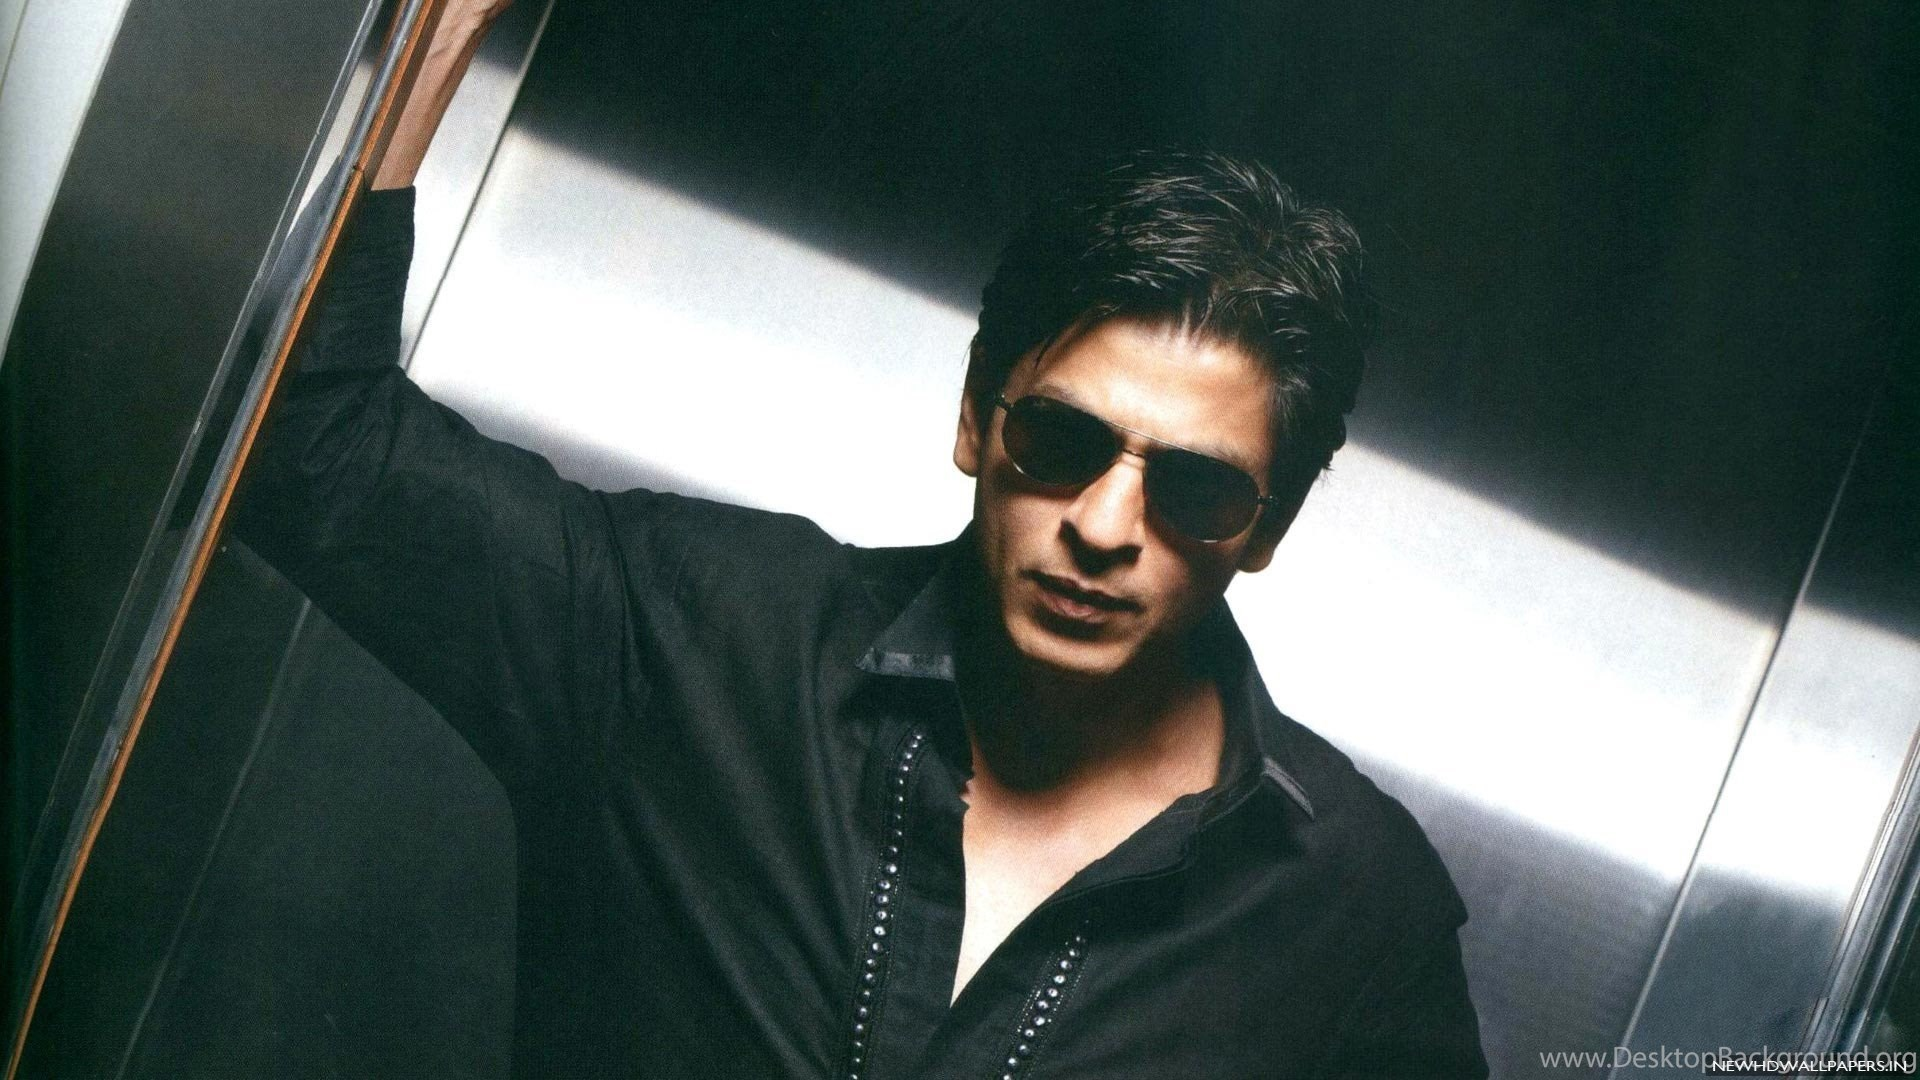 shahrukh khan black sunglasses imagea new hd wallpapers desktop